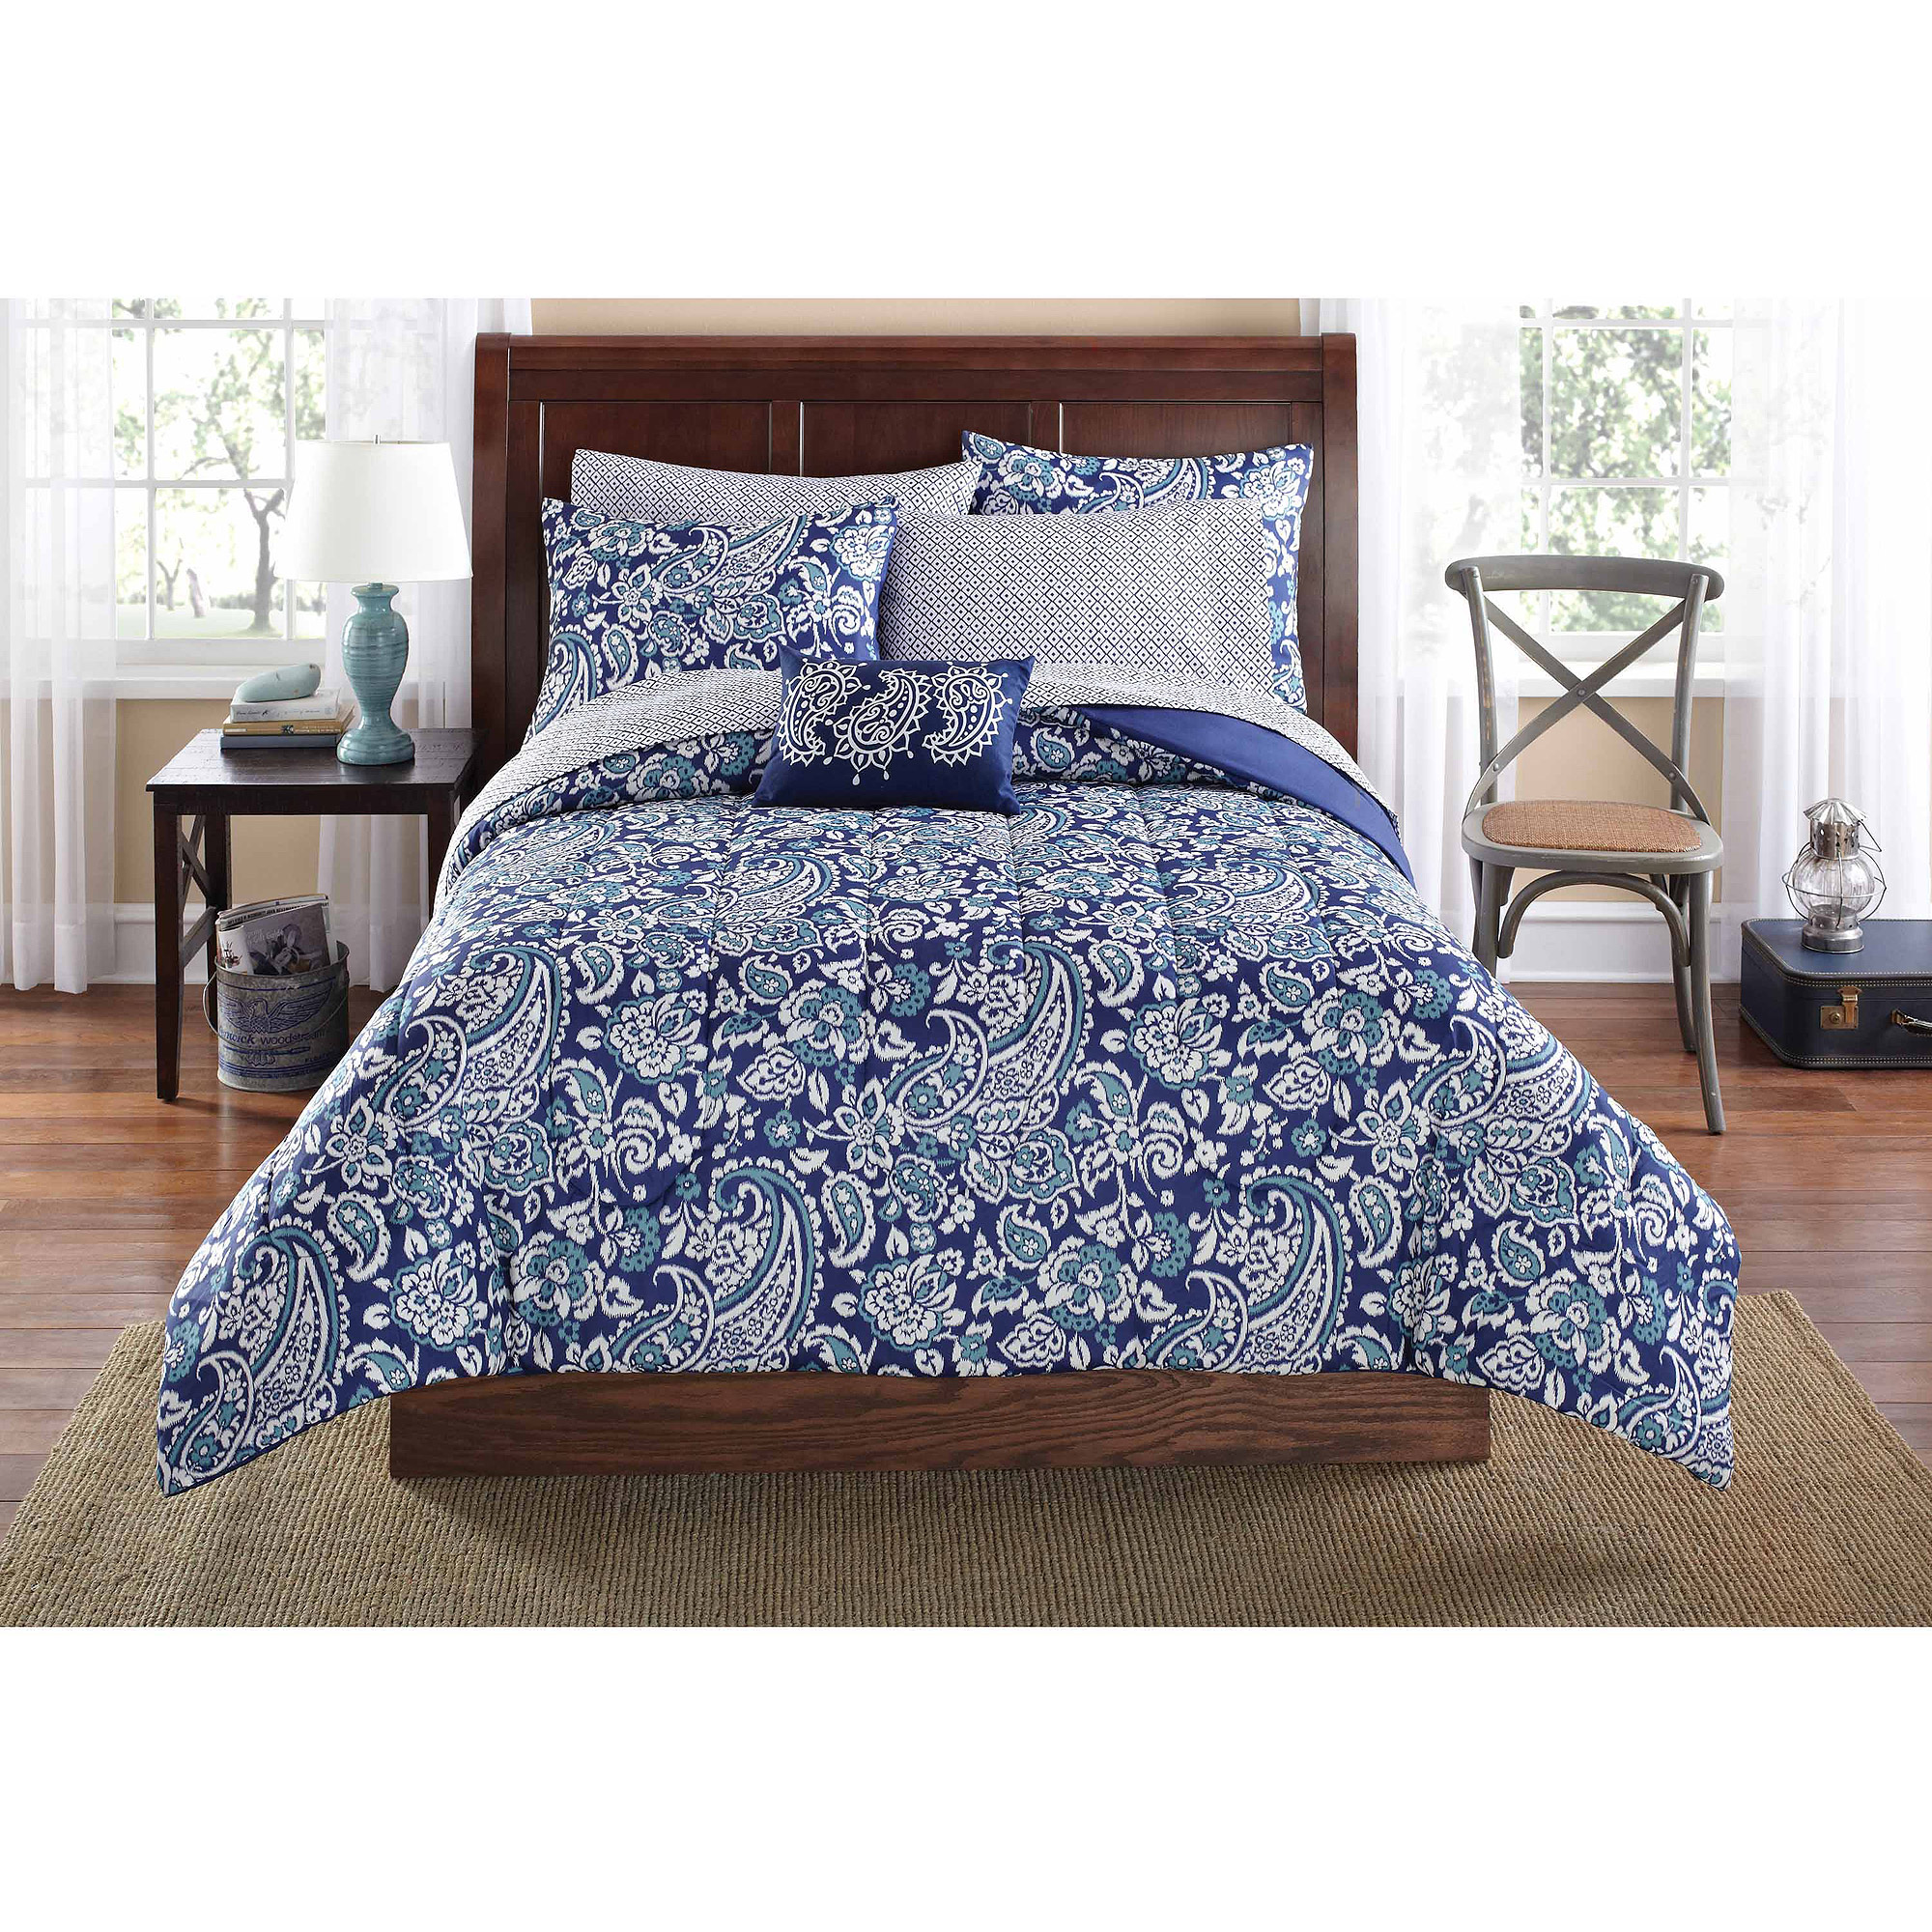 mainstays jaipur paisley bed in a bag set blue  walmartcom -